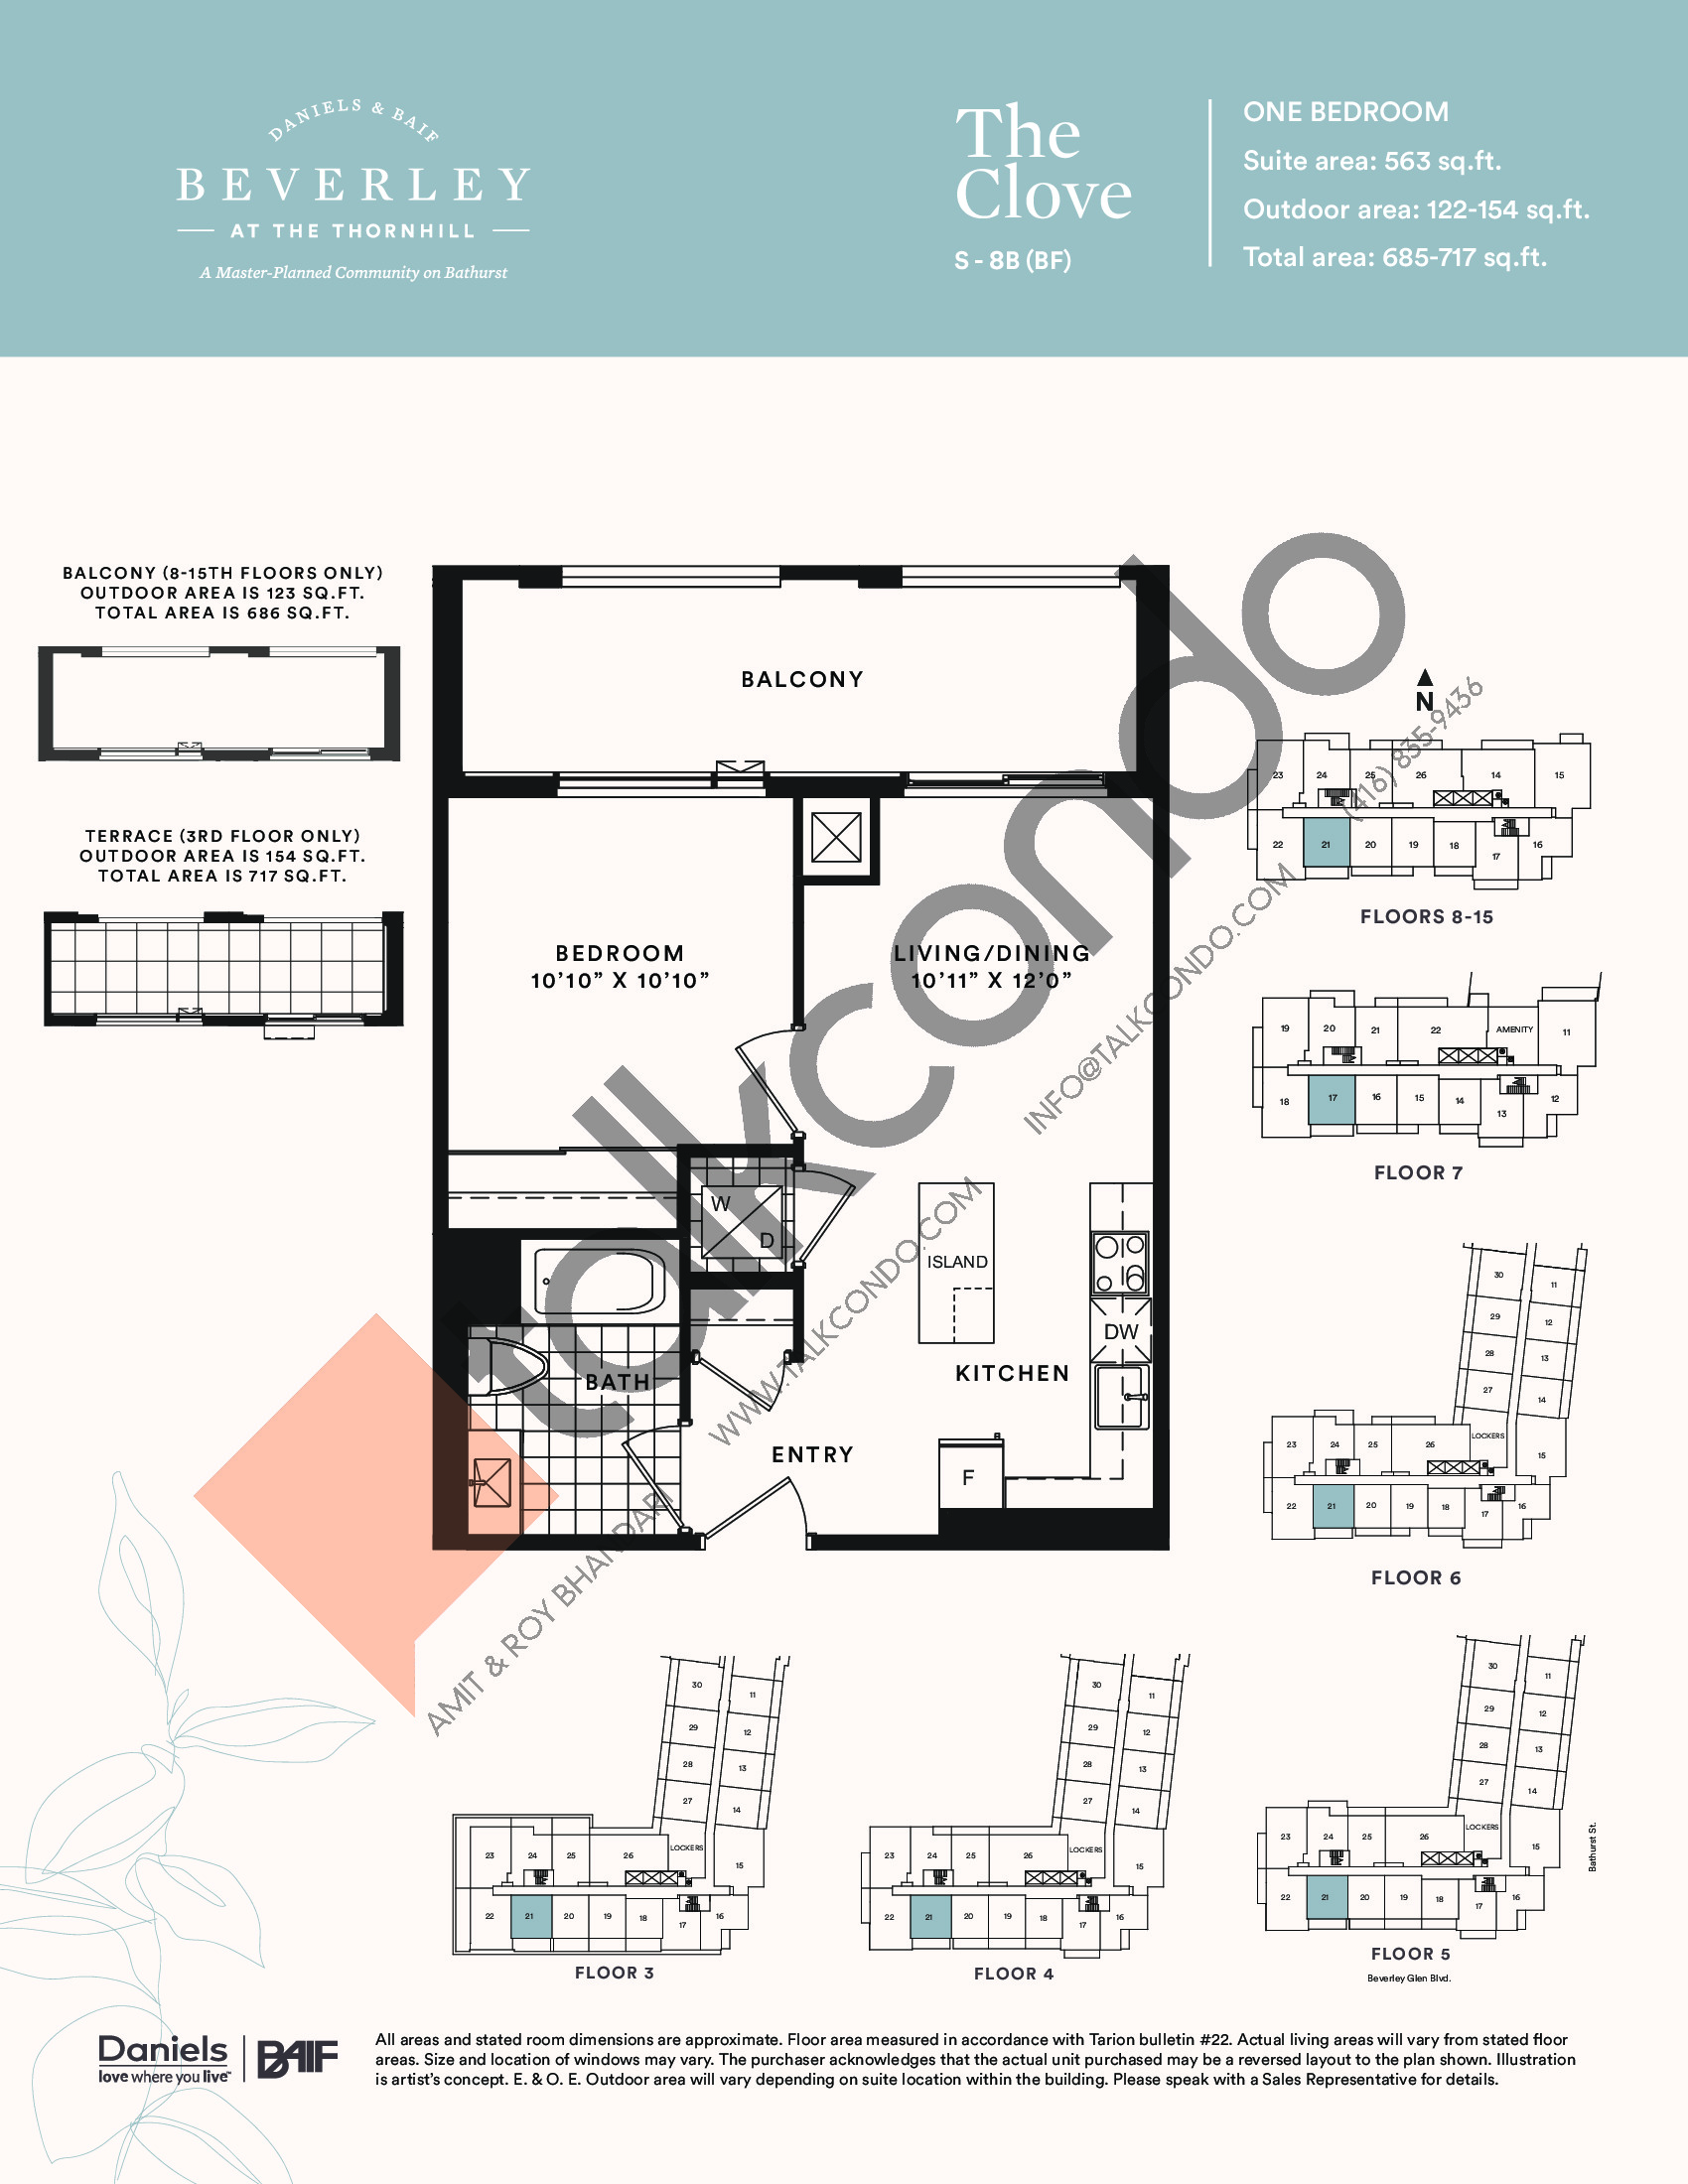 The Clove Floor Plan at The Beverley at the Thornhill Condos - 563 sq.ft